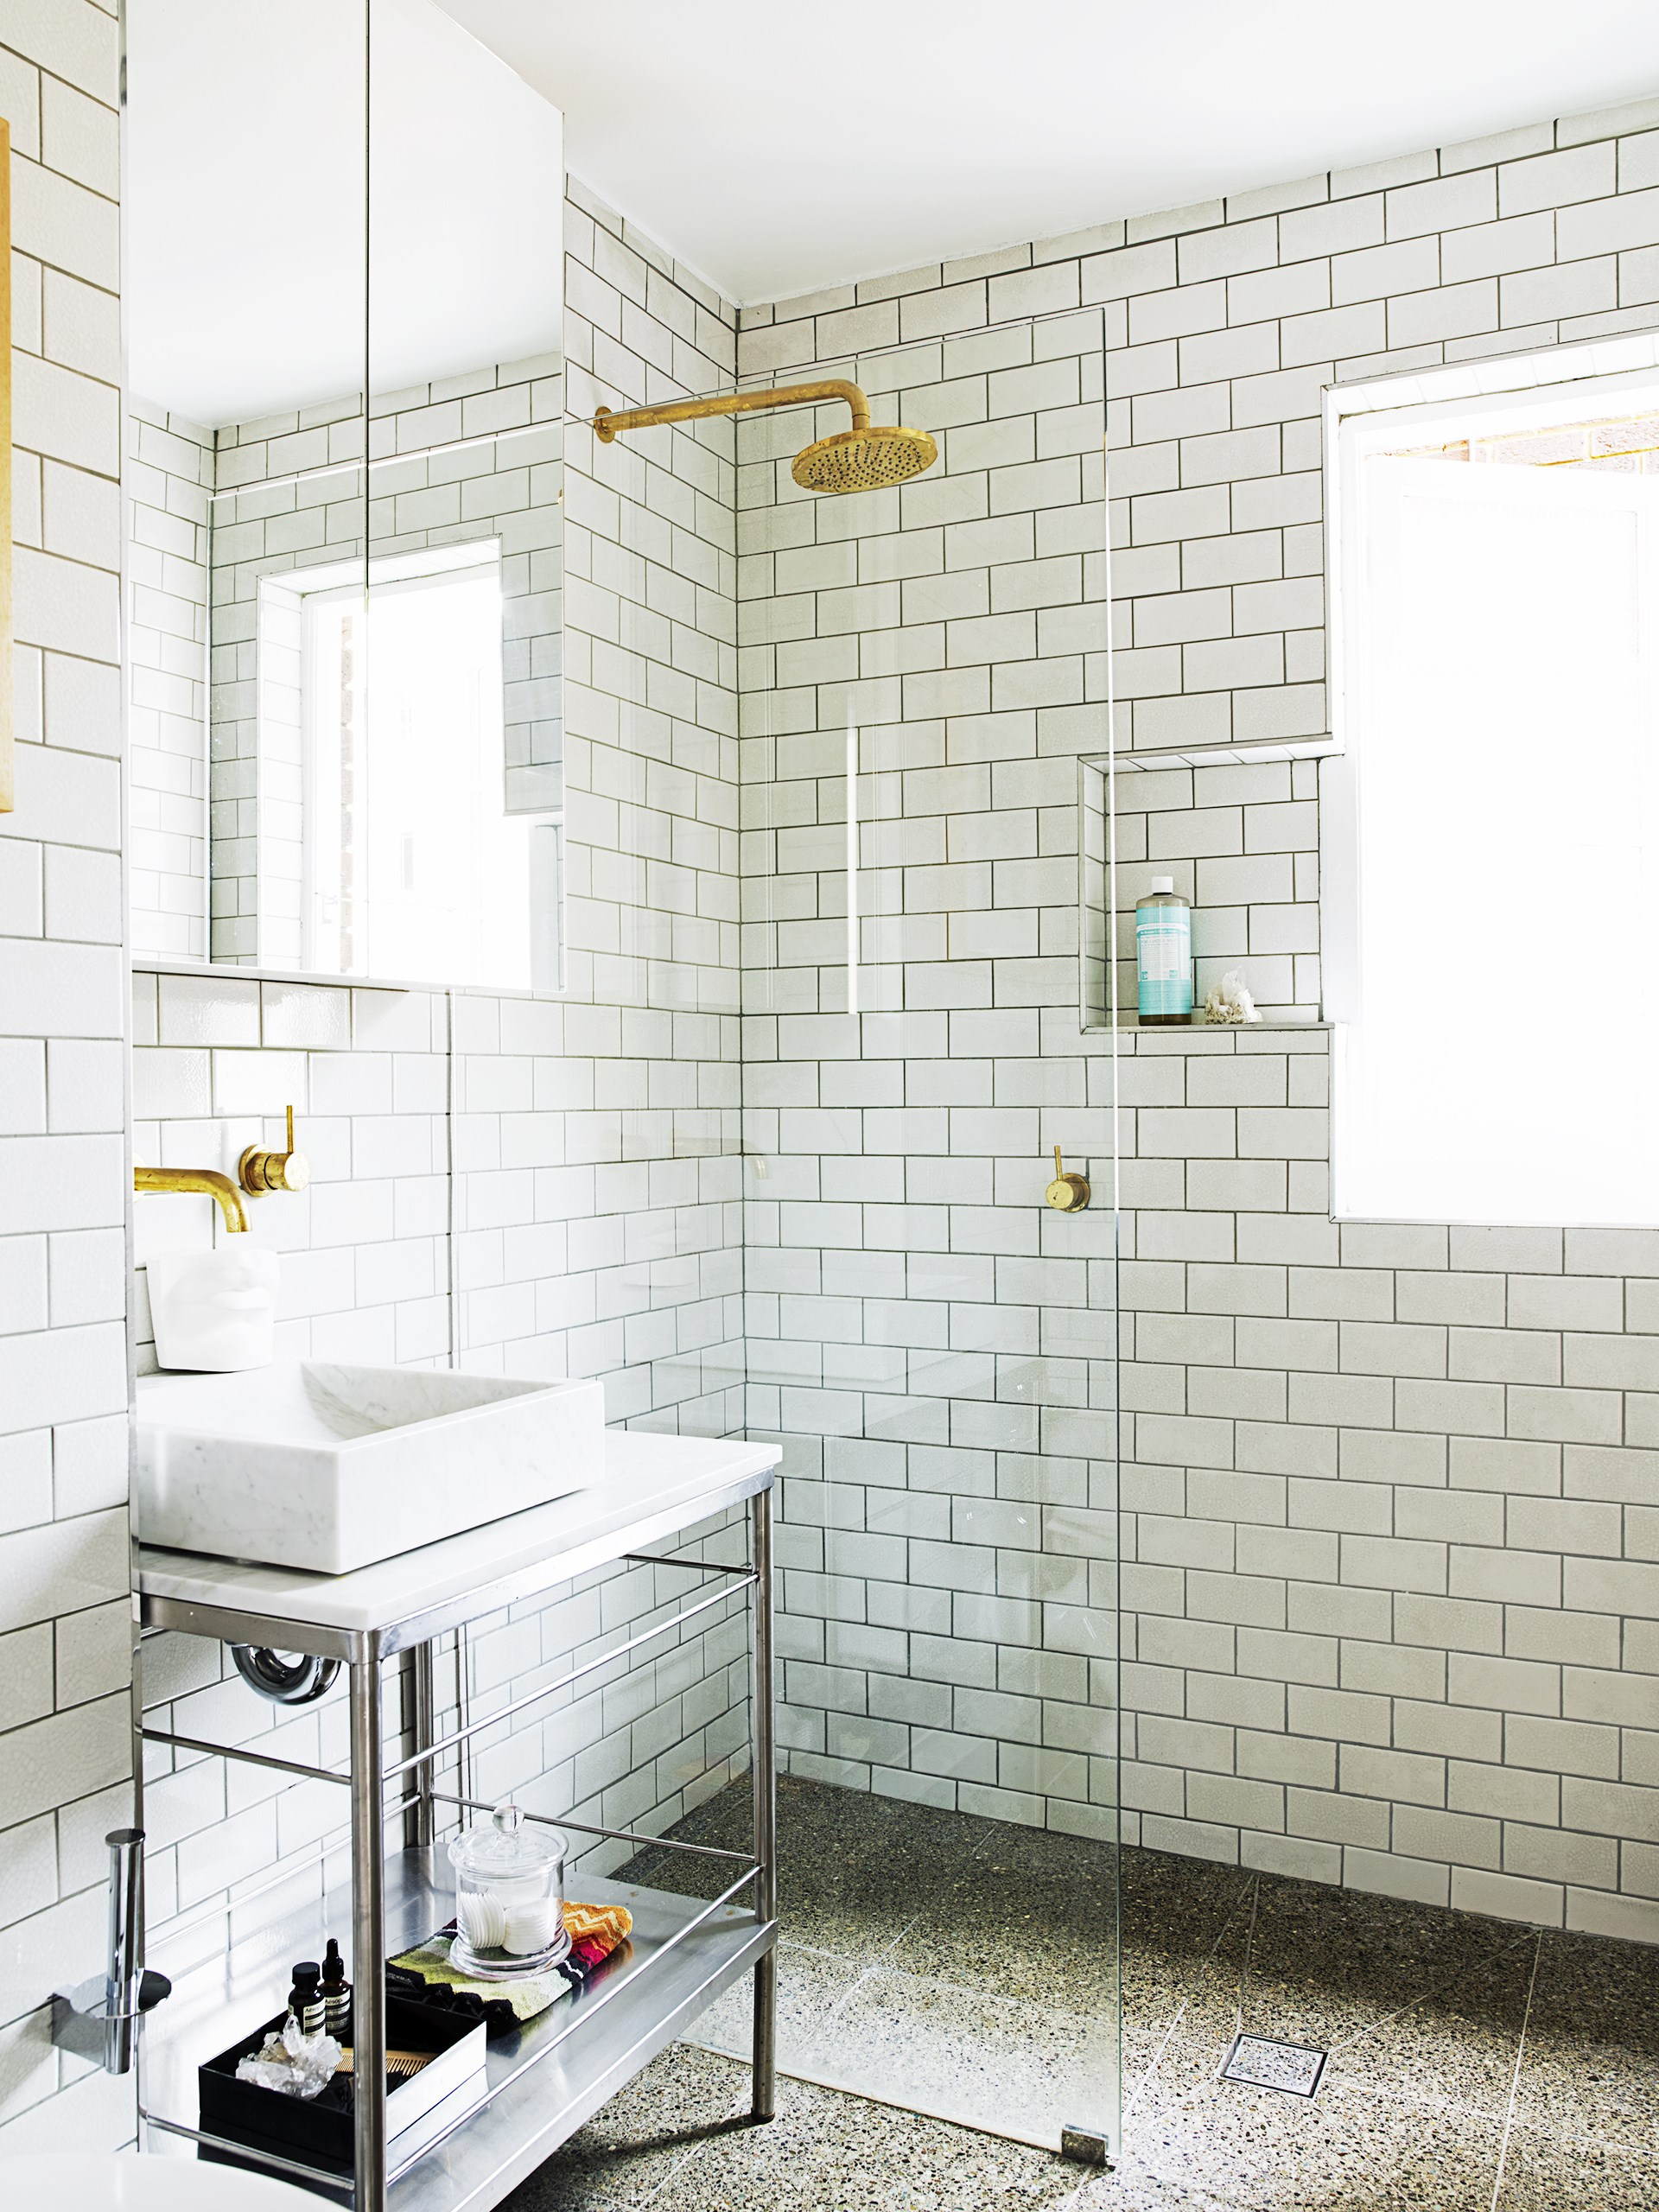 "Traditional subway tiles with contrasting grout recall the boldness of Art Deco style in the bathroom of this [Sydney apartment](http://www.homestolove.com.au/gallery-dinas-art-deco-sydney-apartment-reno-1497|target=""_blank""). *Photo: Prue Ruscoe*"